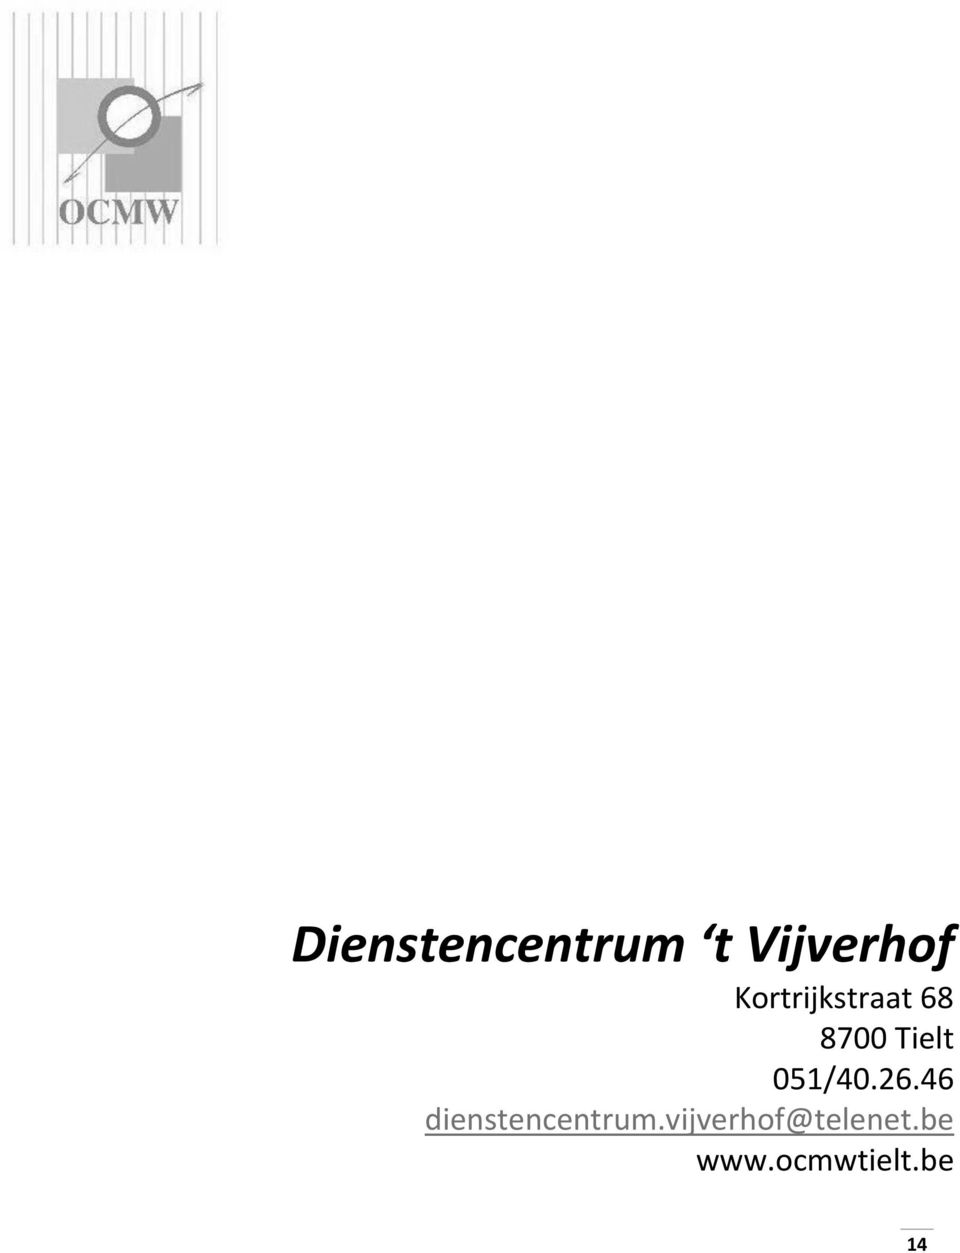 051/40.26.46 dienstencentrum.